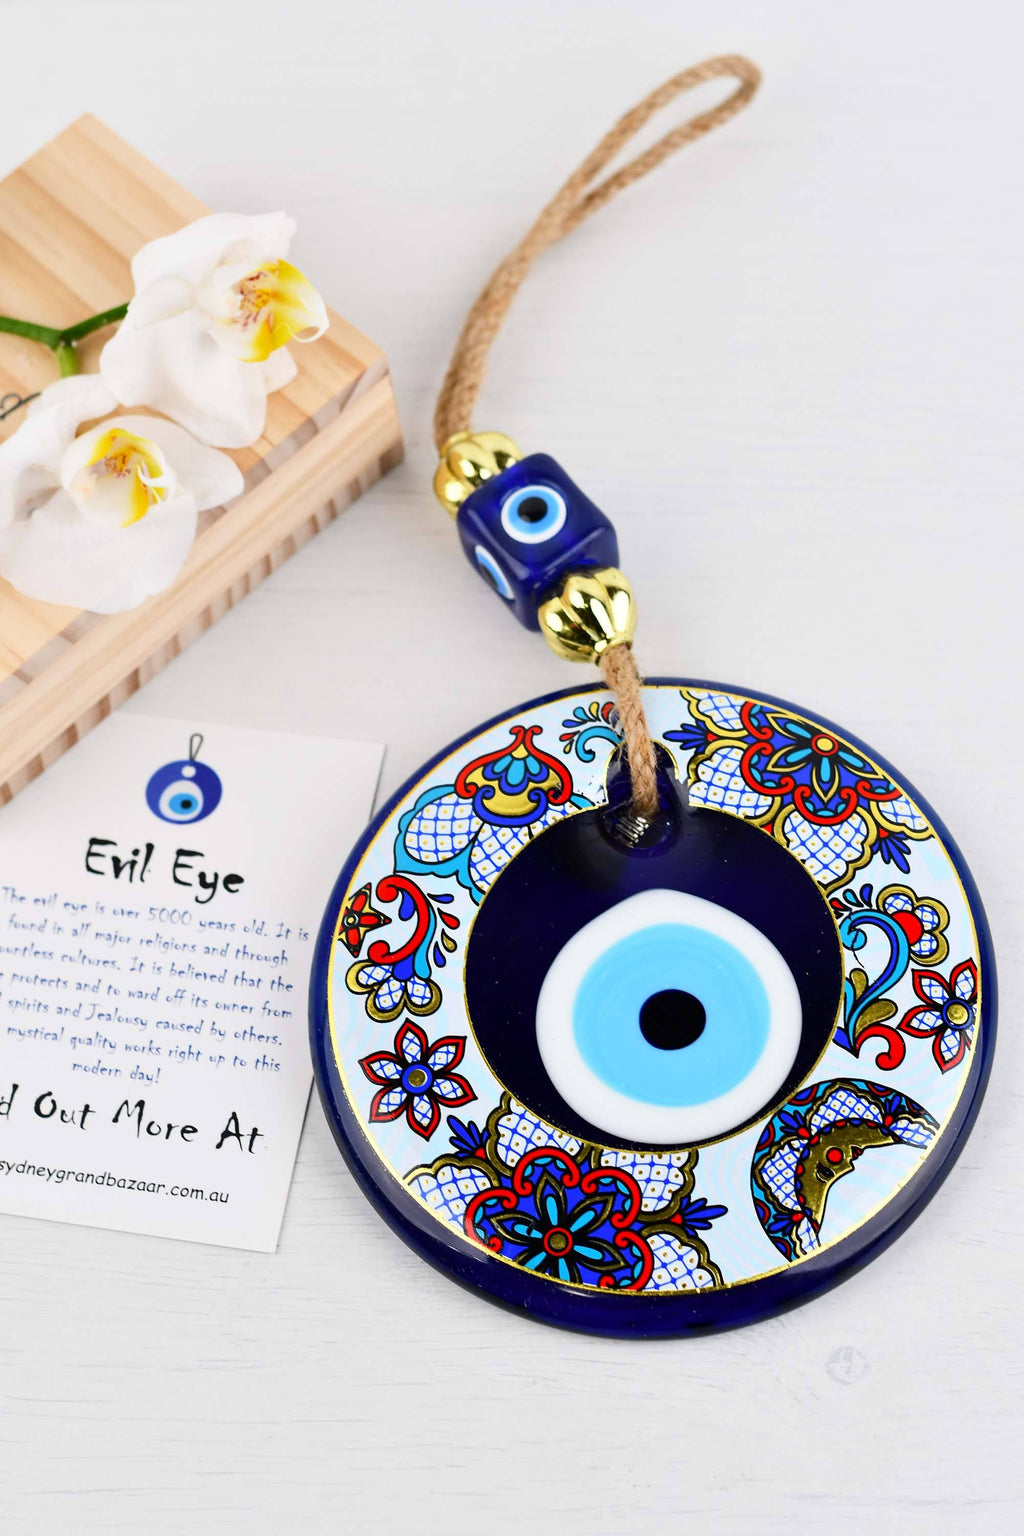 Evil Eye Glass Beads Multicoloured Tile Printed Wall Hanging 3 Evil Eye Sydney Grand Bazaar